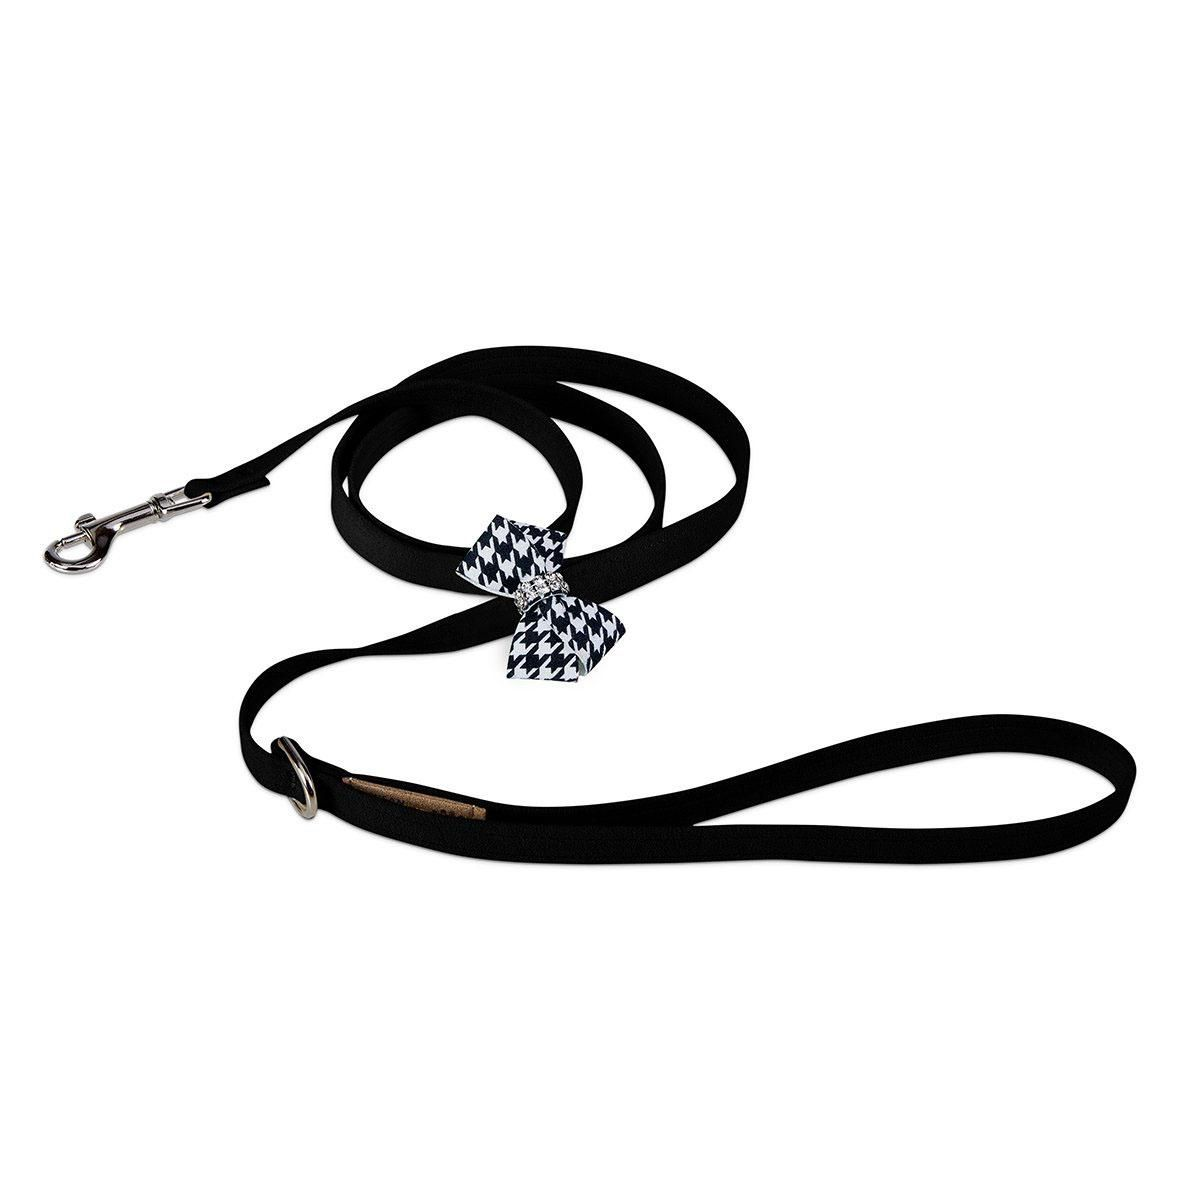 Black Amp White Houndstooth Nouveau Bow Dog Leash By Susan